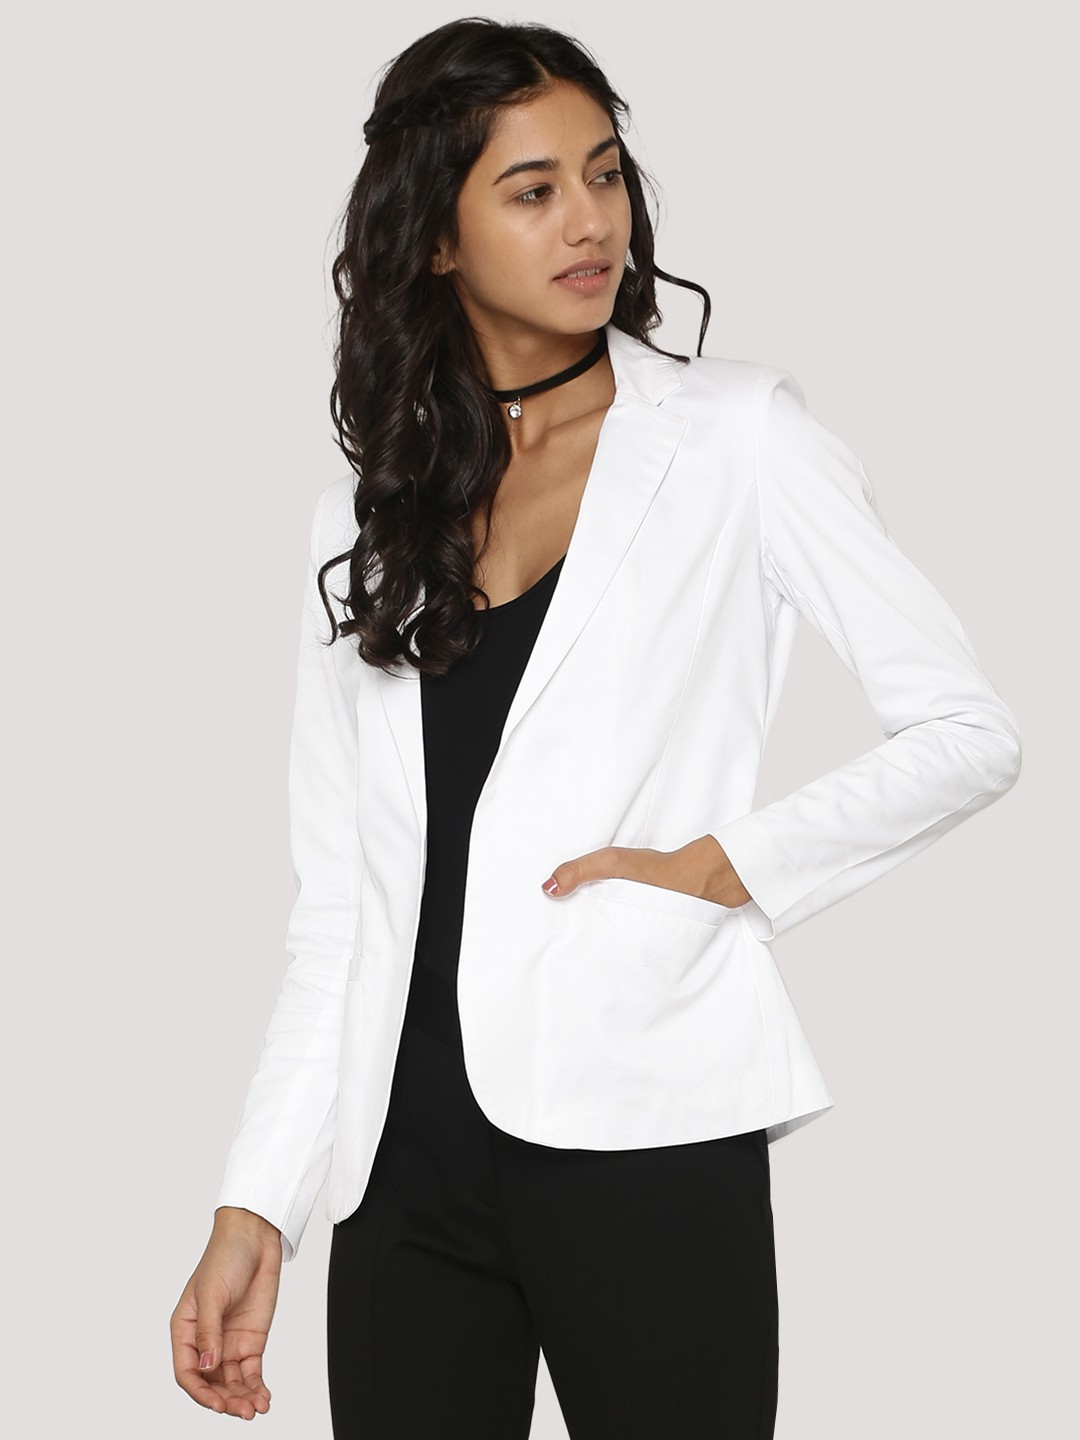 Ladies Blazers Online. No lady's wardrobe is complete without a stylish blazer, here at Konga we have multitude of different styles and designs for you at the best prices in Nigeria you might not find anywhere else.